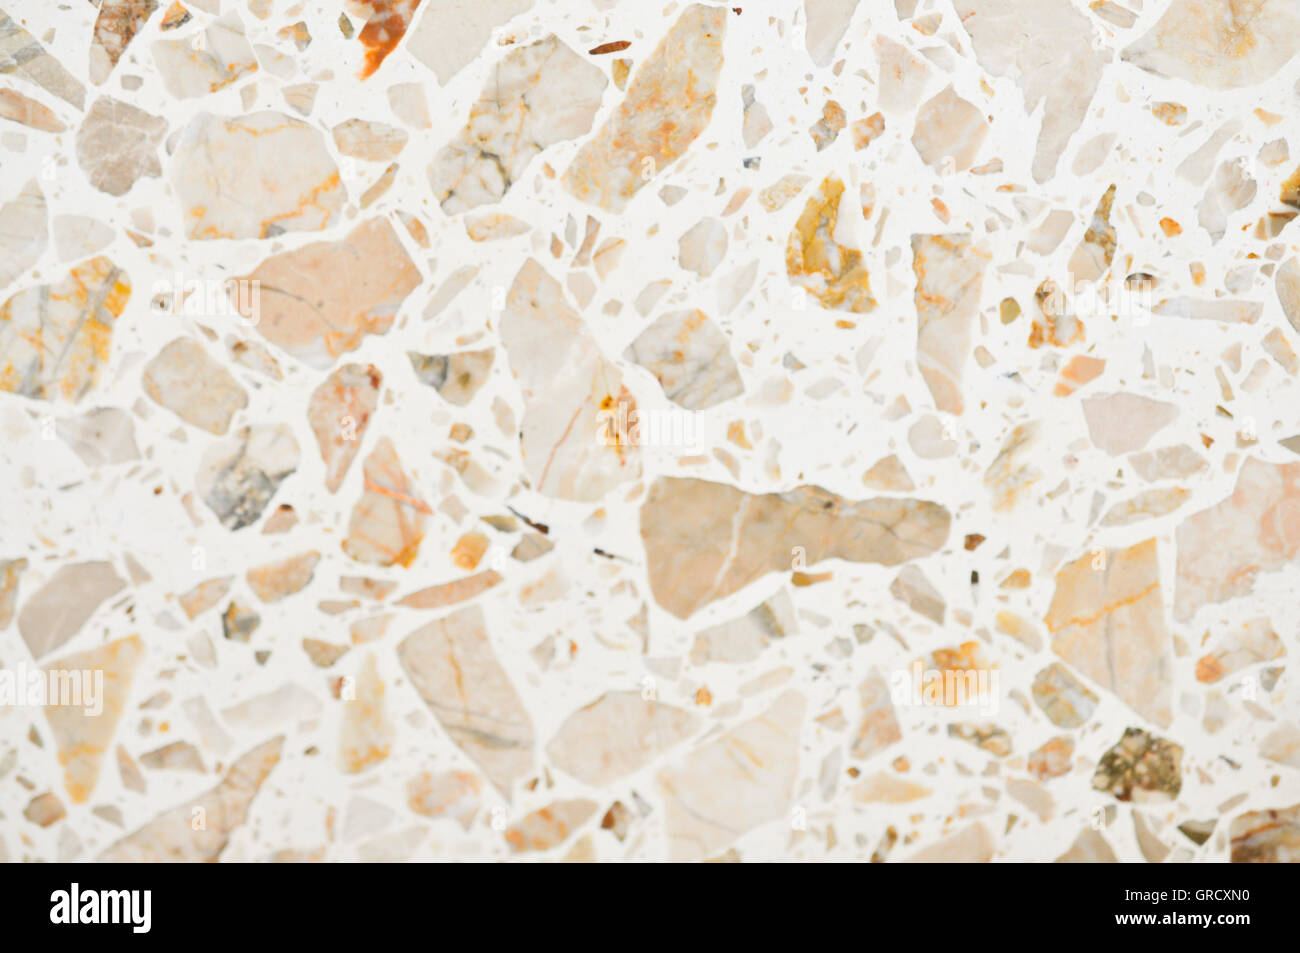 White Marble With Brown Stains - Stock Image